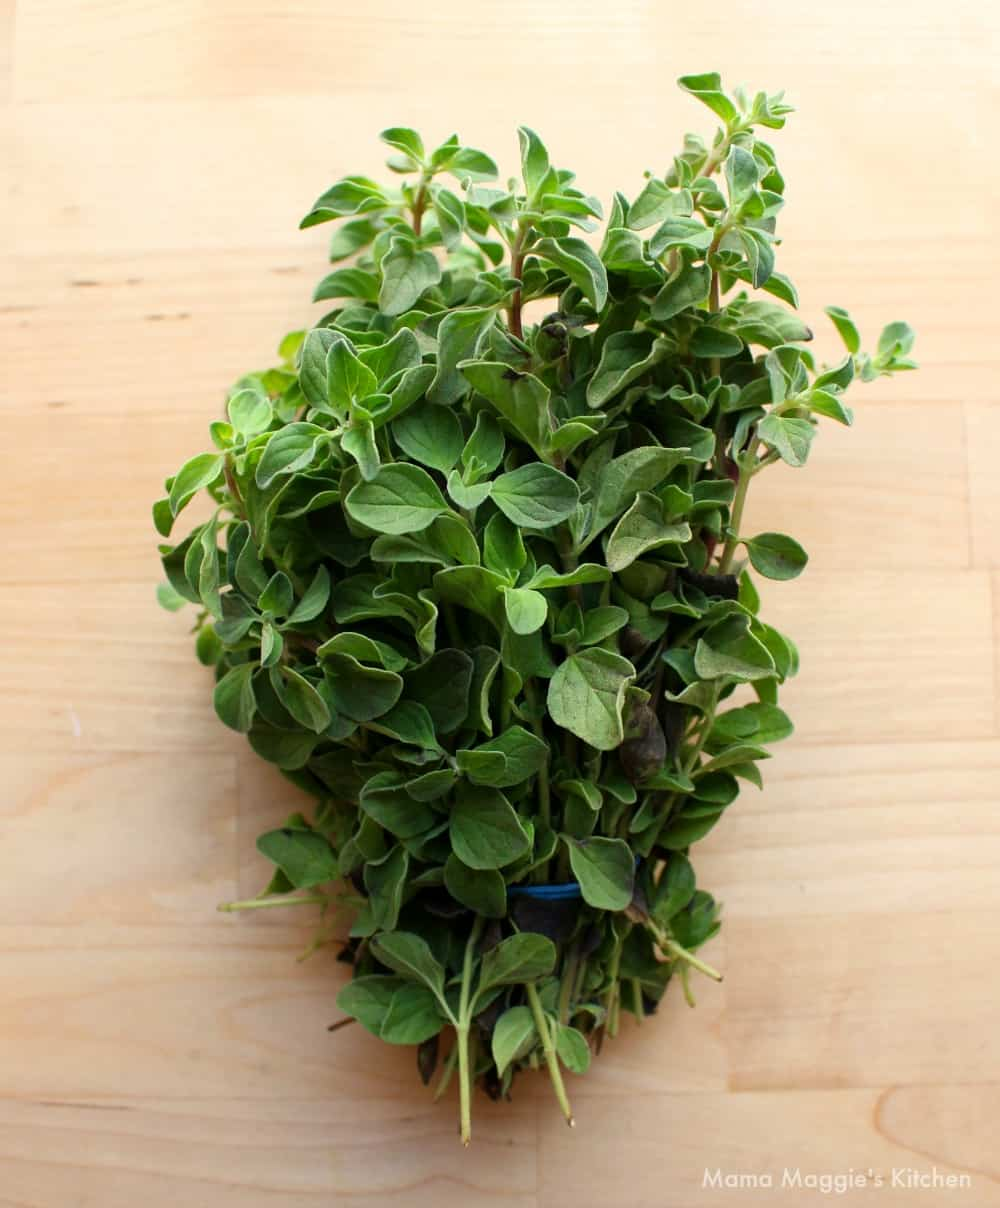 A bundle of fresh oregano on a wooden surface.